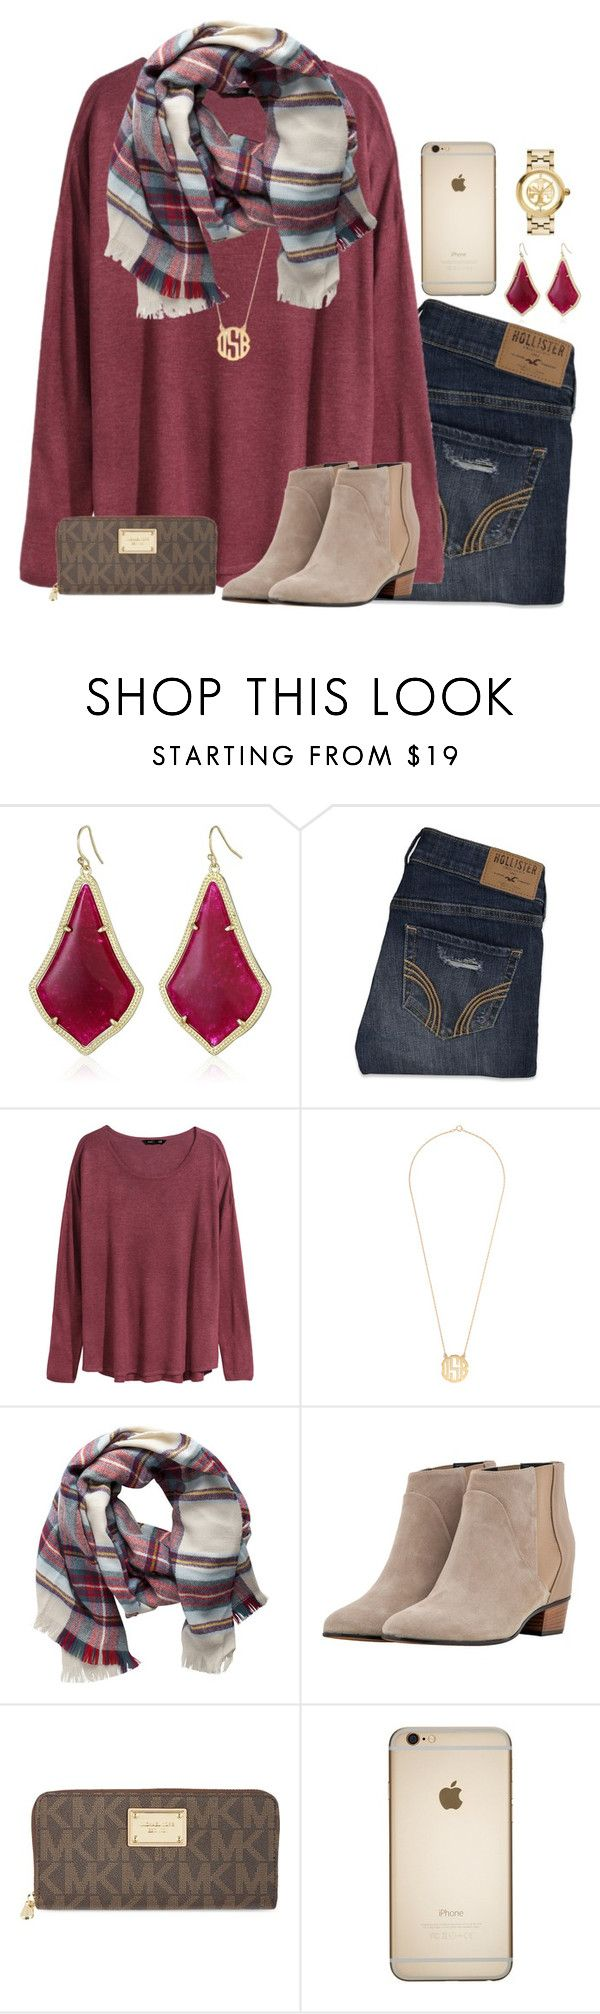 """sooooo ready for Christmas!"" by julesnewkirk ❤ liked on Polyvore featuring Kendra Scott, Hollister Co., H&M, Pieces, Golden Goose, MICHAEL Michael Kors and Tory Burch"